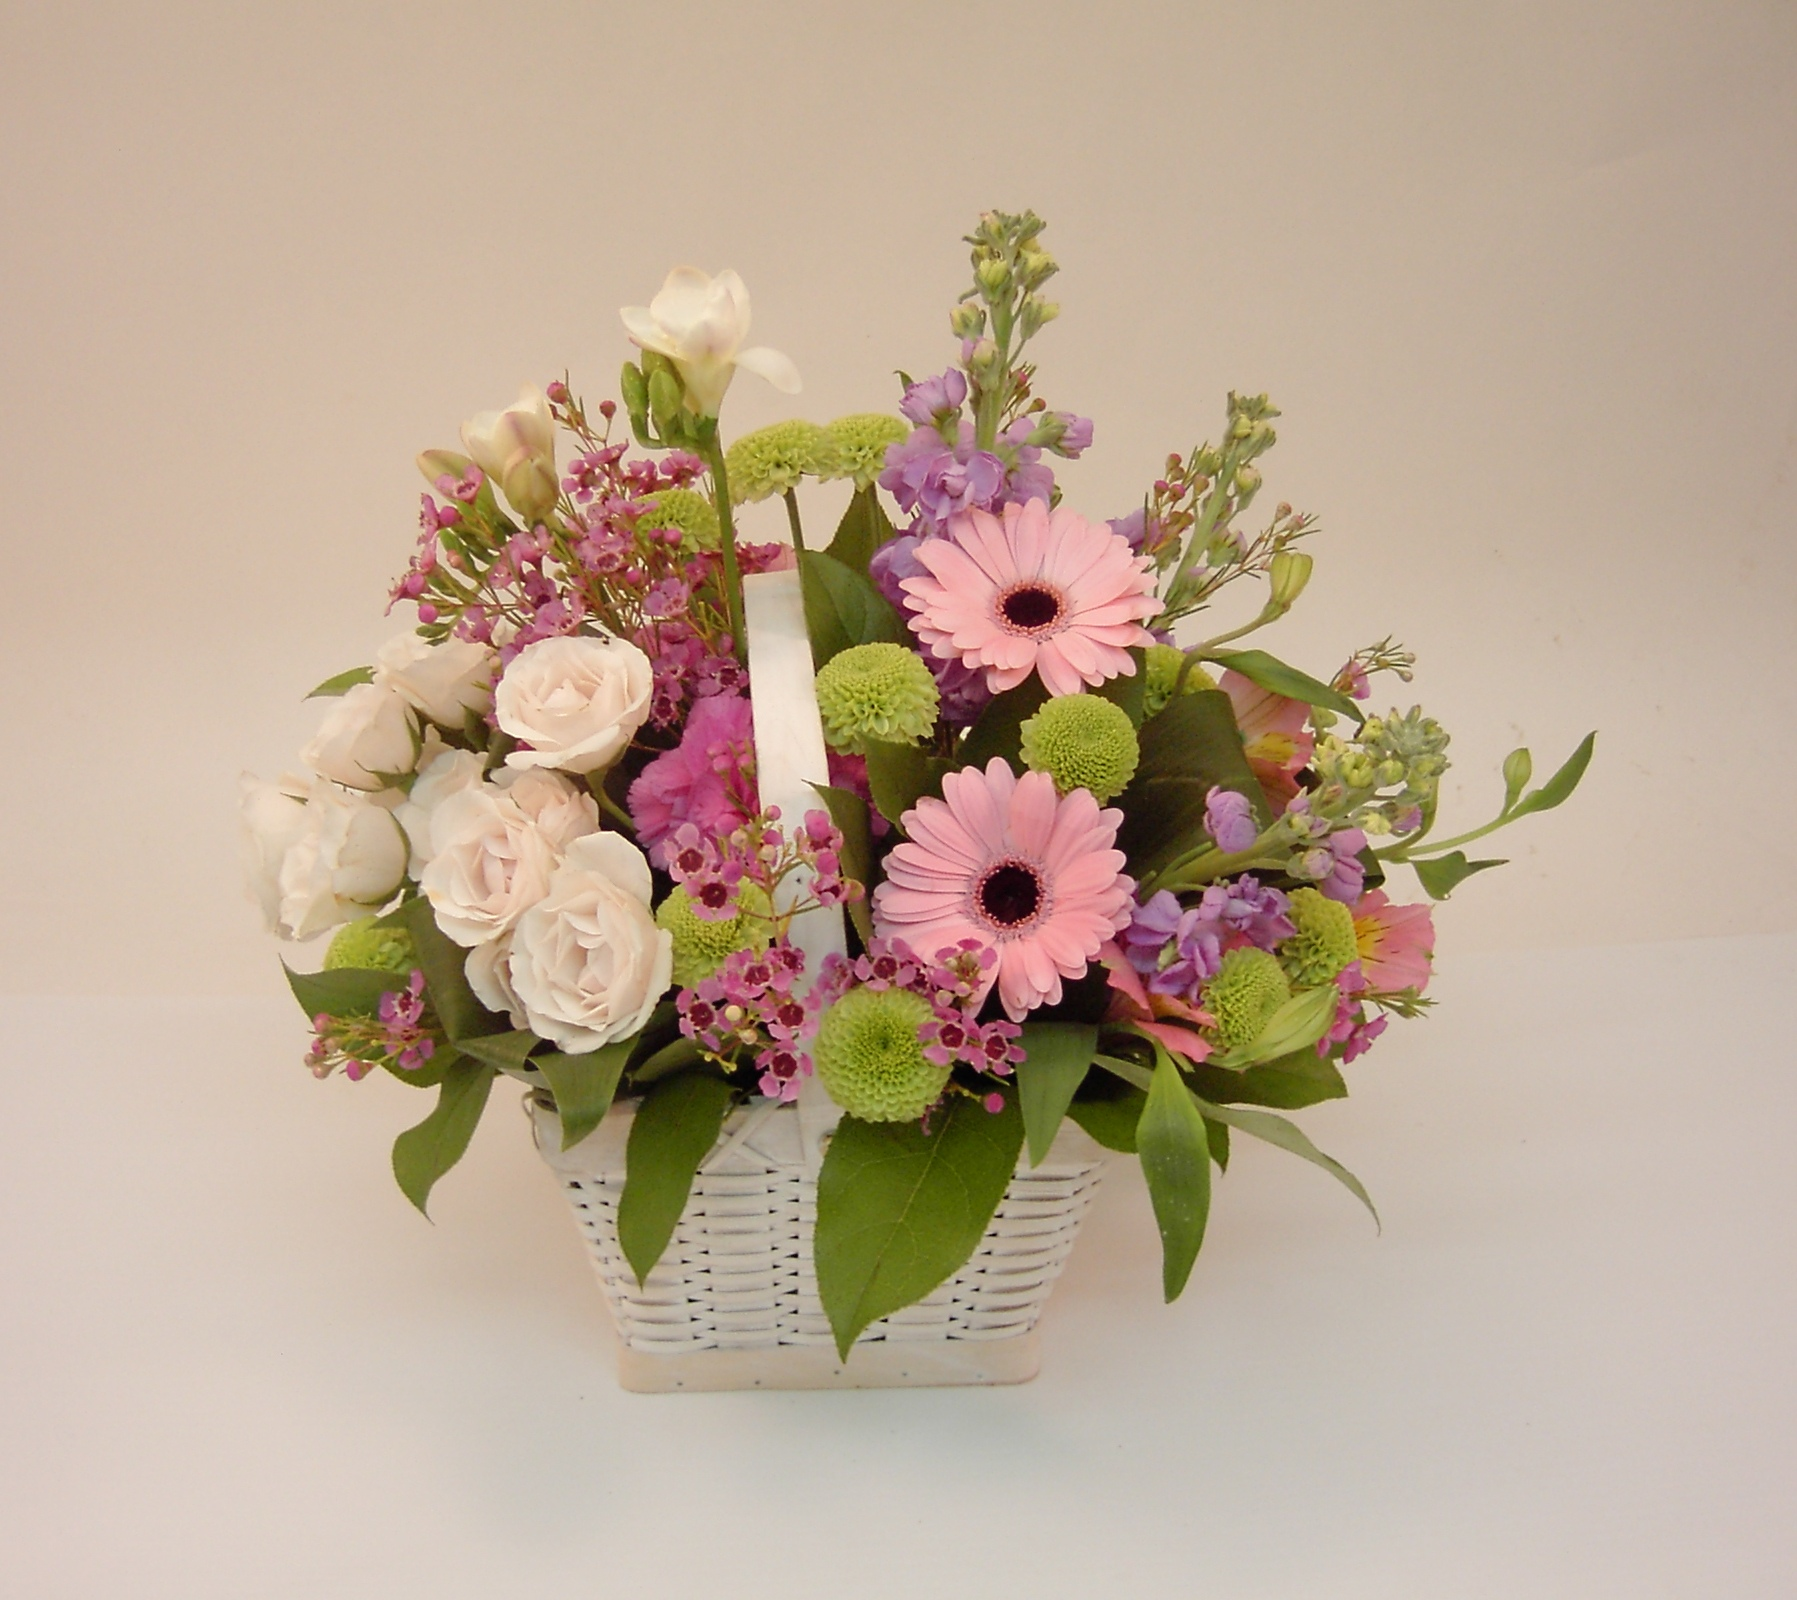 Flower Basket Arrangements Pictures : Easter baskets which would you choose martin s the